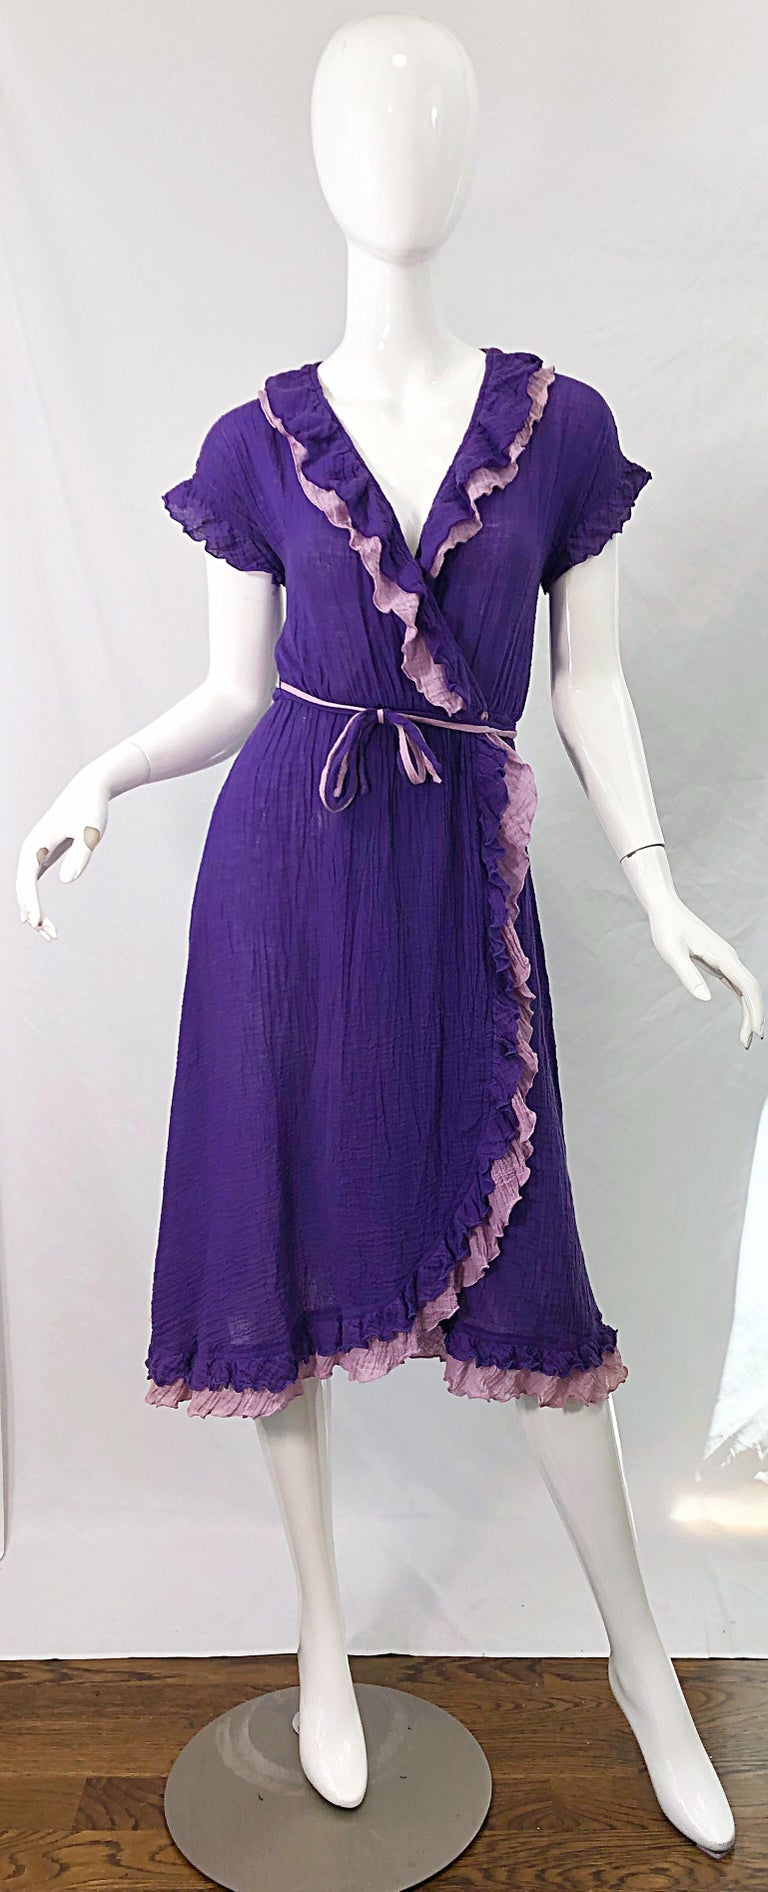 Amazing 1970s purple and lavender lightweight cotton voile short sleeve wrap dress ! Features a vibrant regal purple with lavender ruffle details. Elastic waistband. Both colors on each of the belts. Light and breezy perfect for any time of year.